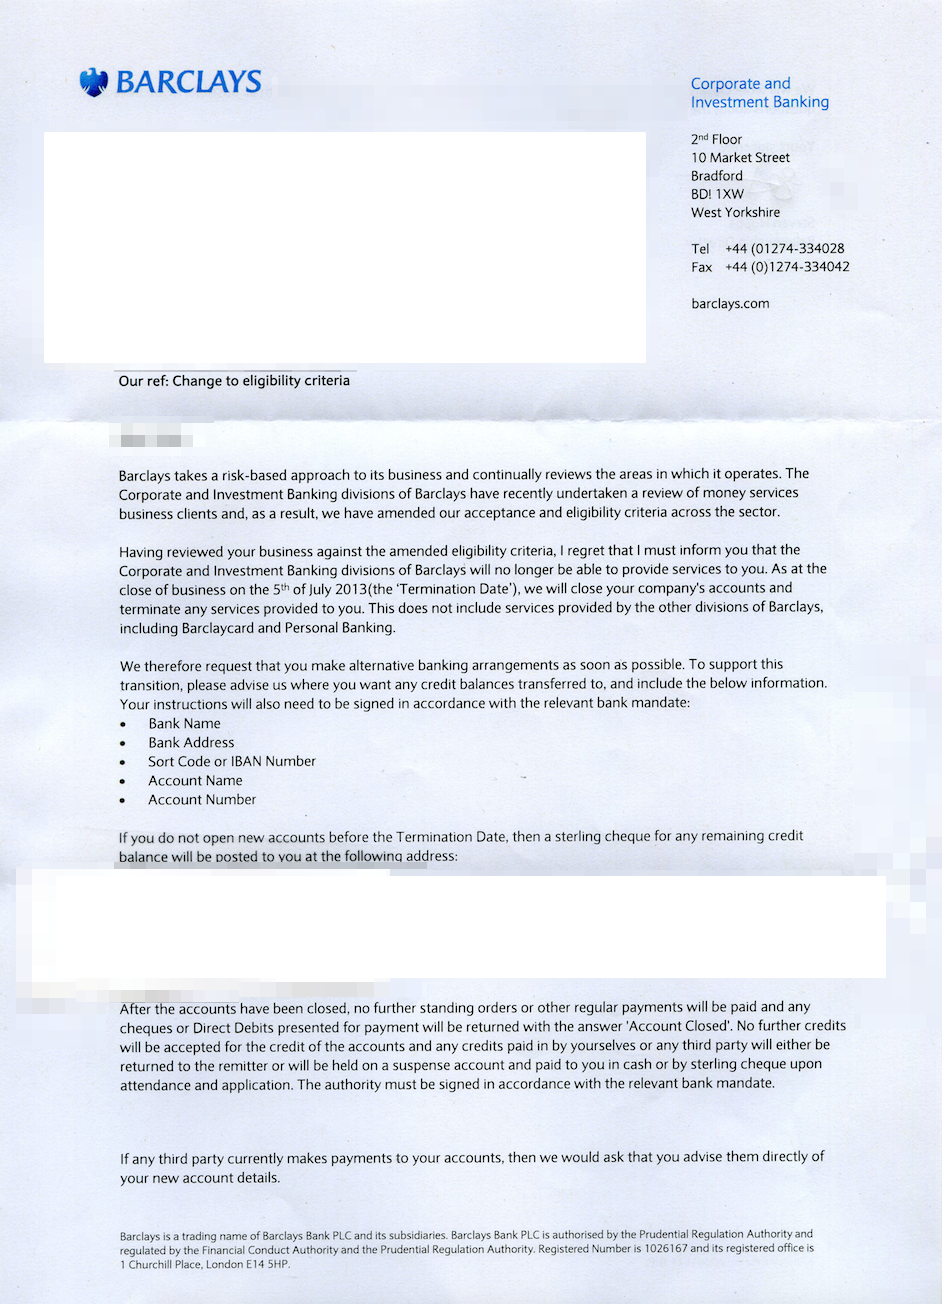 Bank account closing letter format in pdf format gallery letter sample letter format for closing bank account gallery letter format of account closing letter images letter yadclub Choice Image